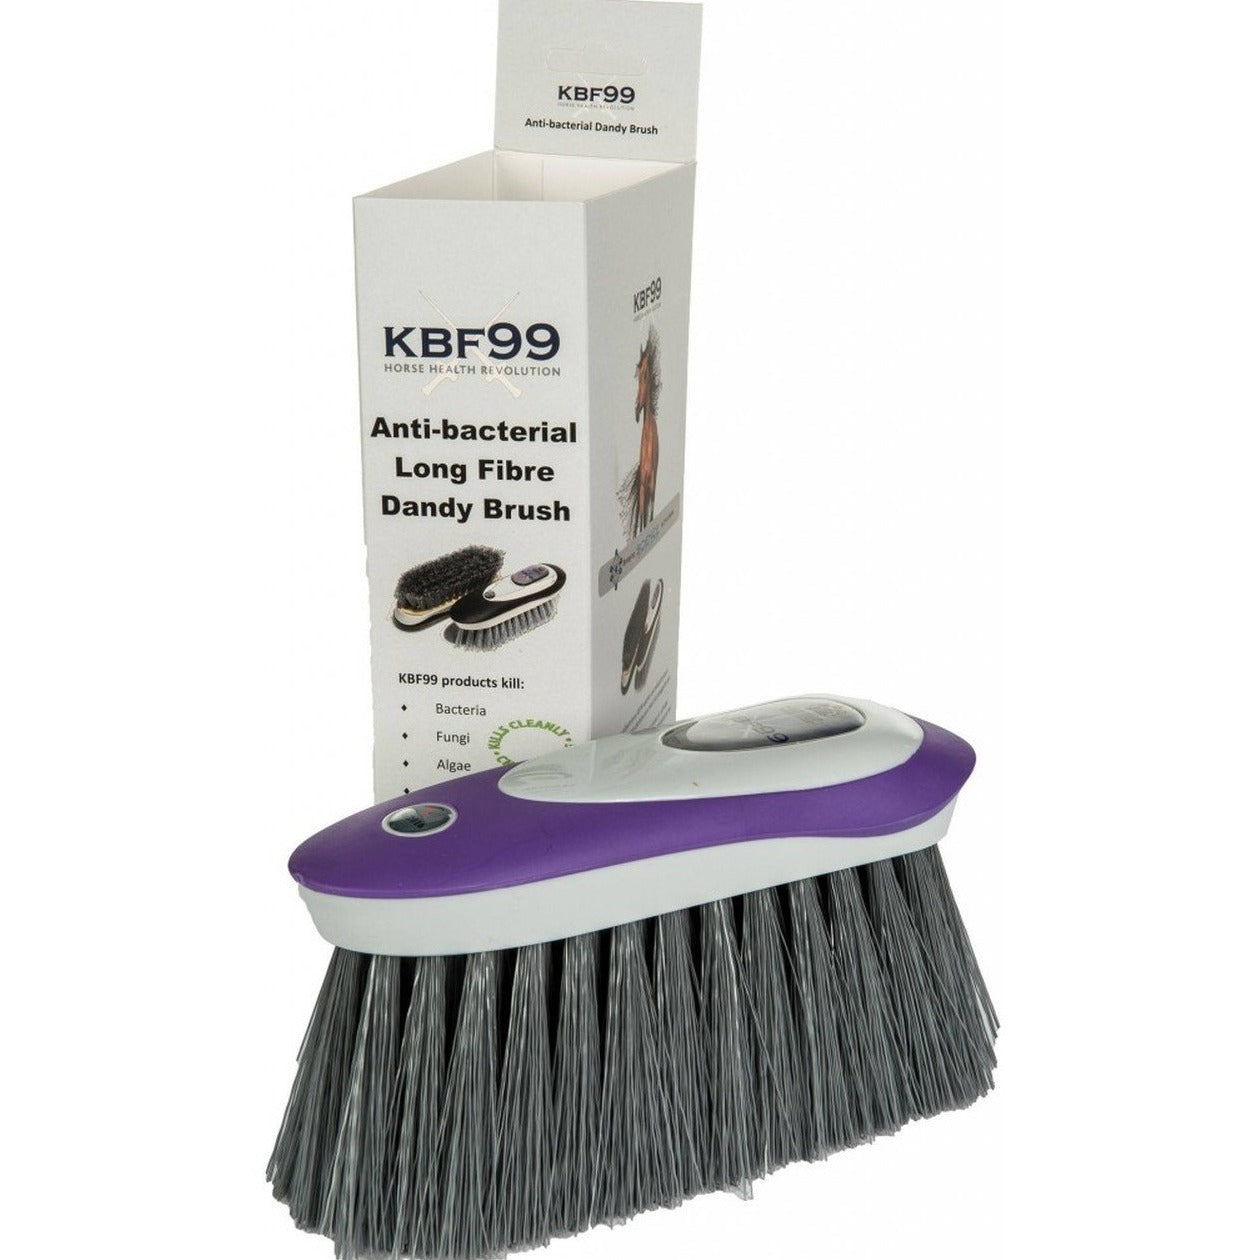 KBF99 Long Dandy Brush